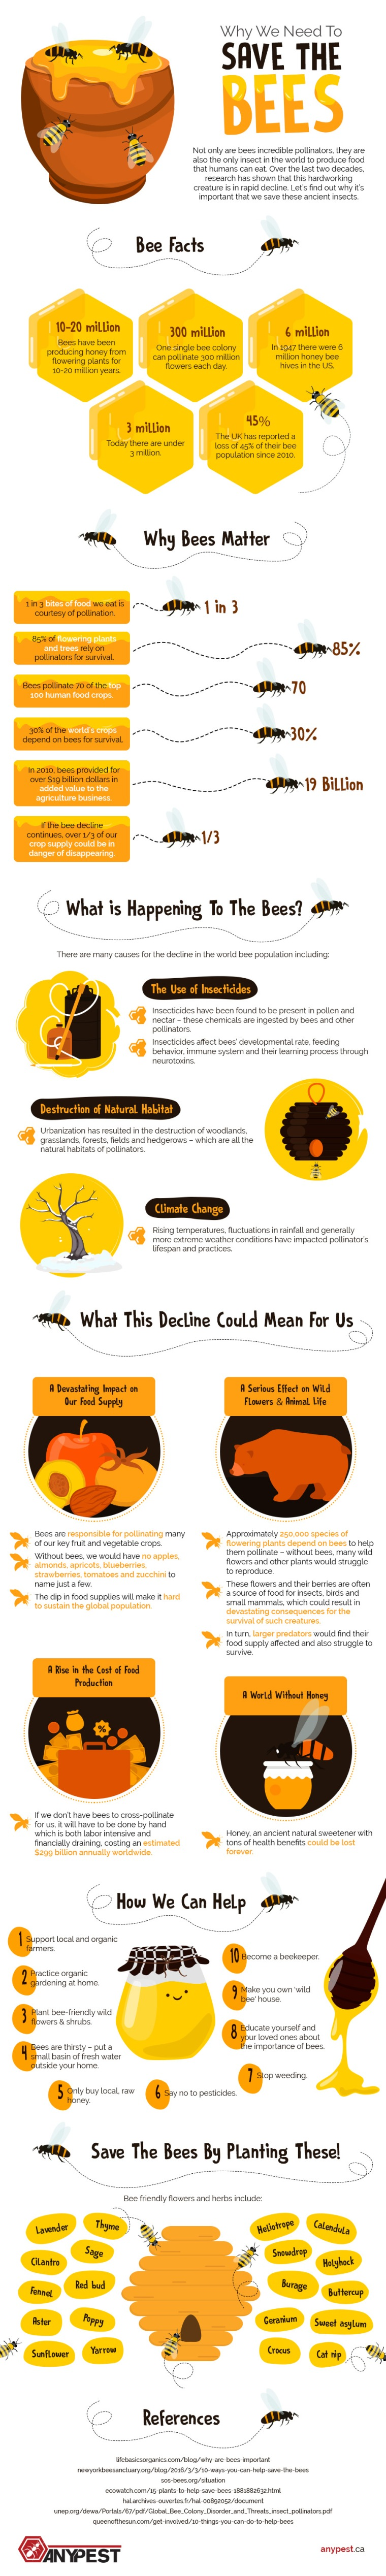 Why we Need to Save the Bees [Infographic] | ecogreenlove